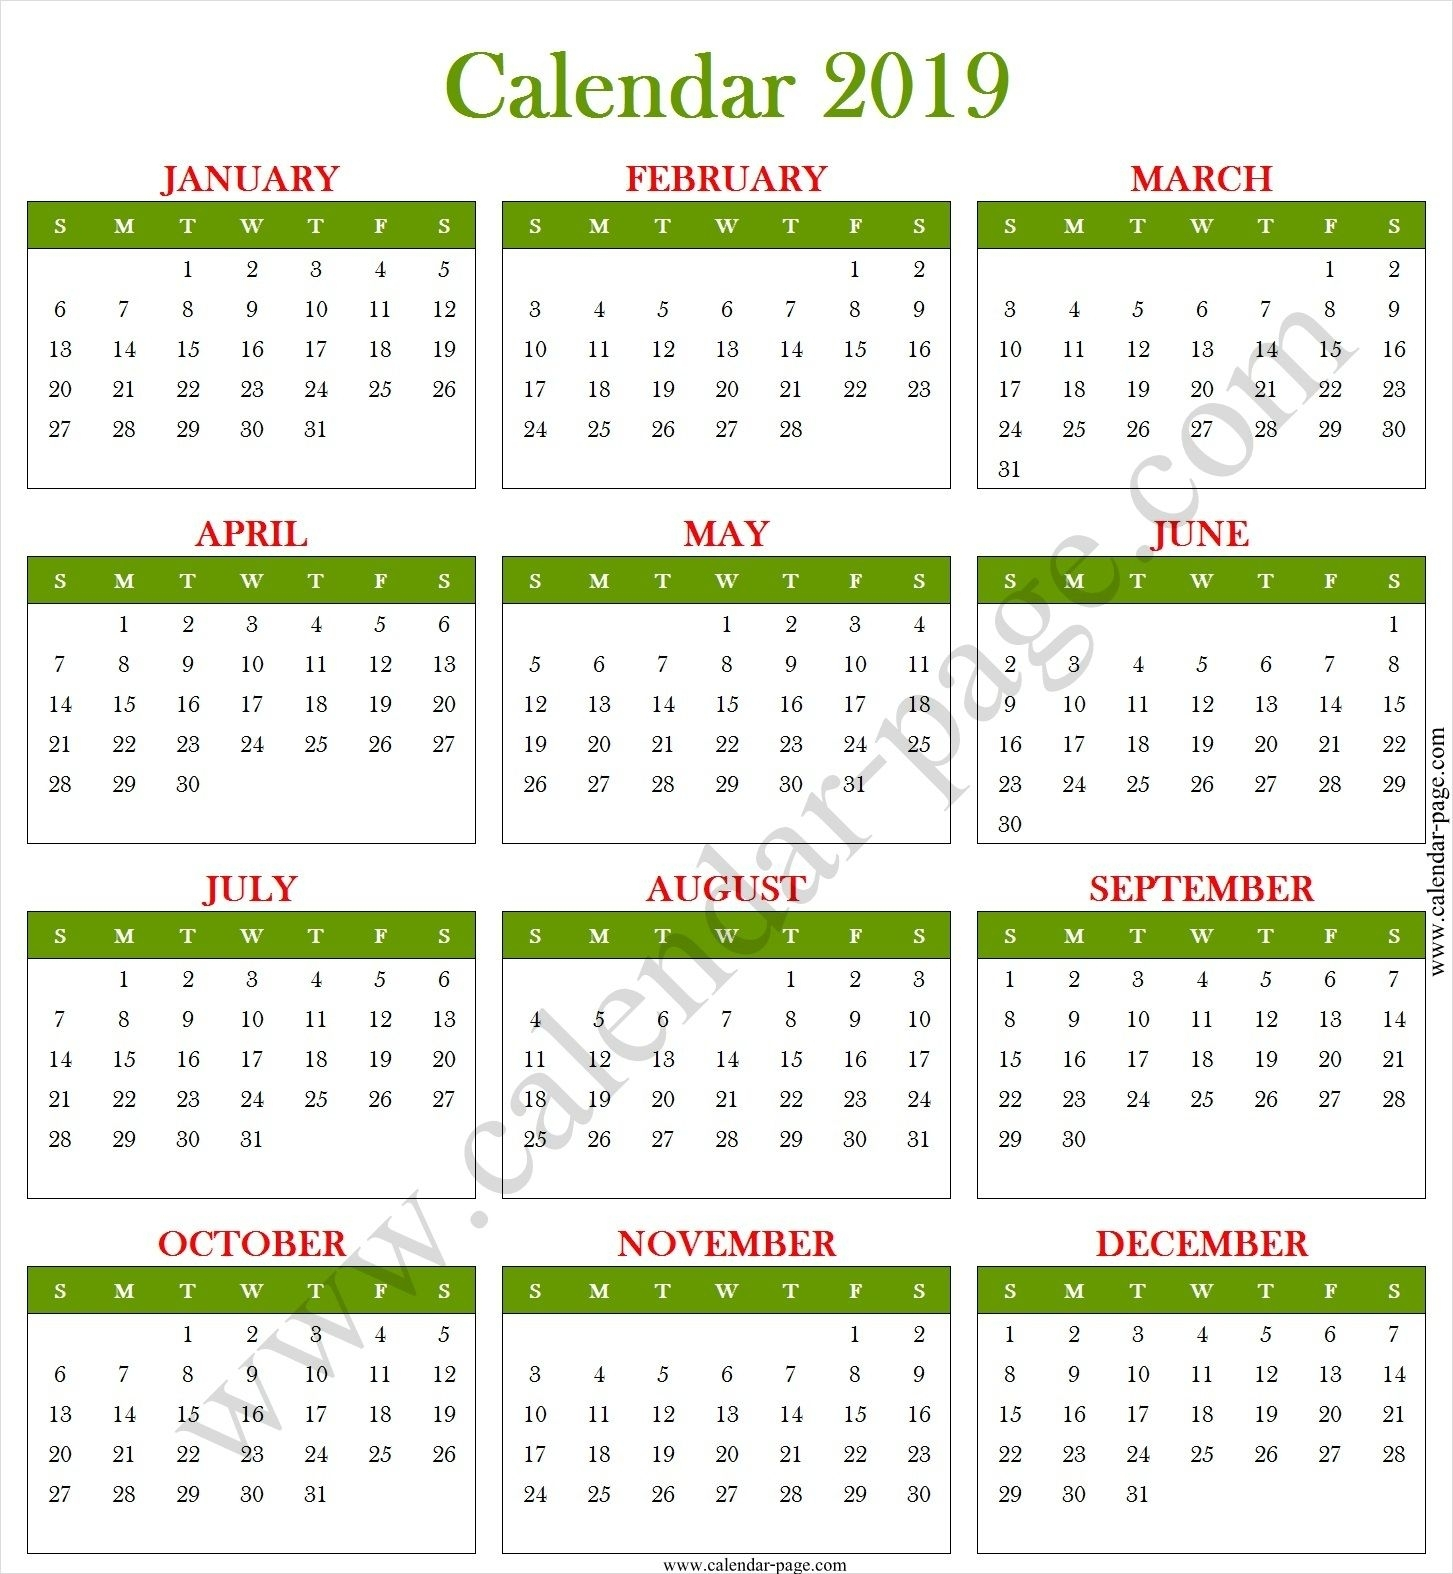 2019 Calendar Bangla | 2019 Calendar, Calendar 2019 Template with 2020 Year Calendar Printable Free Bangla